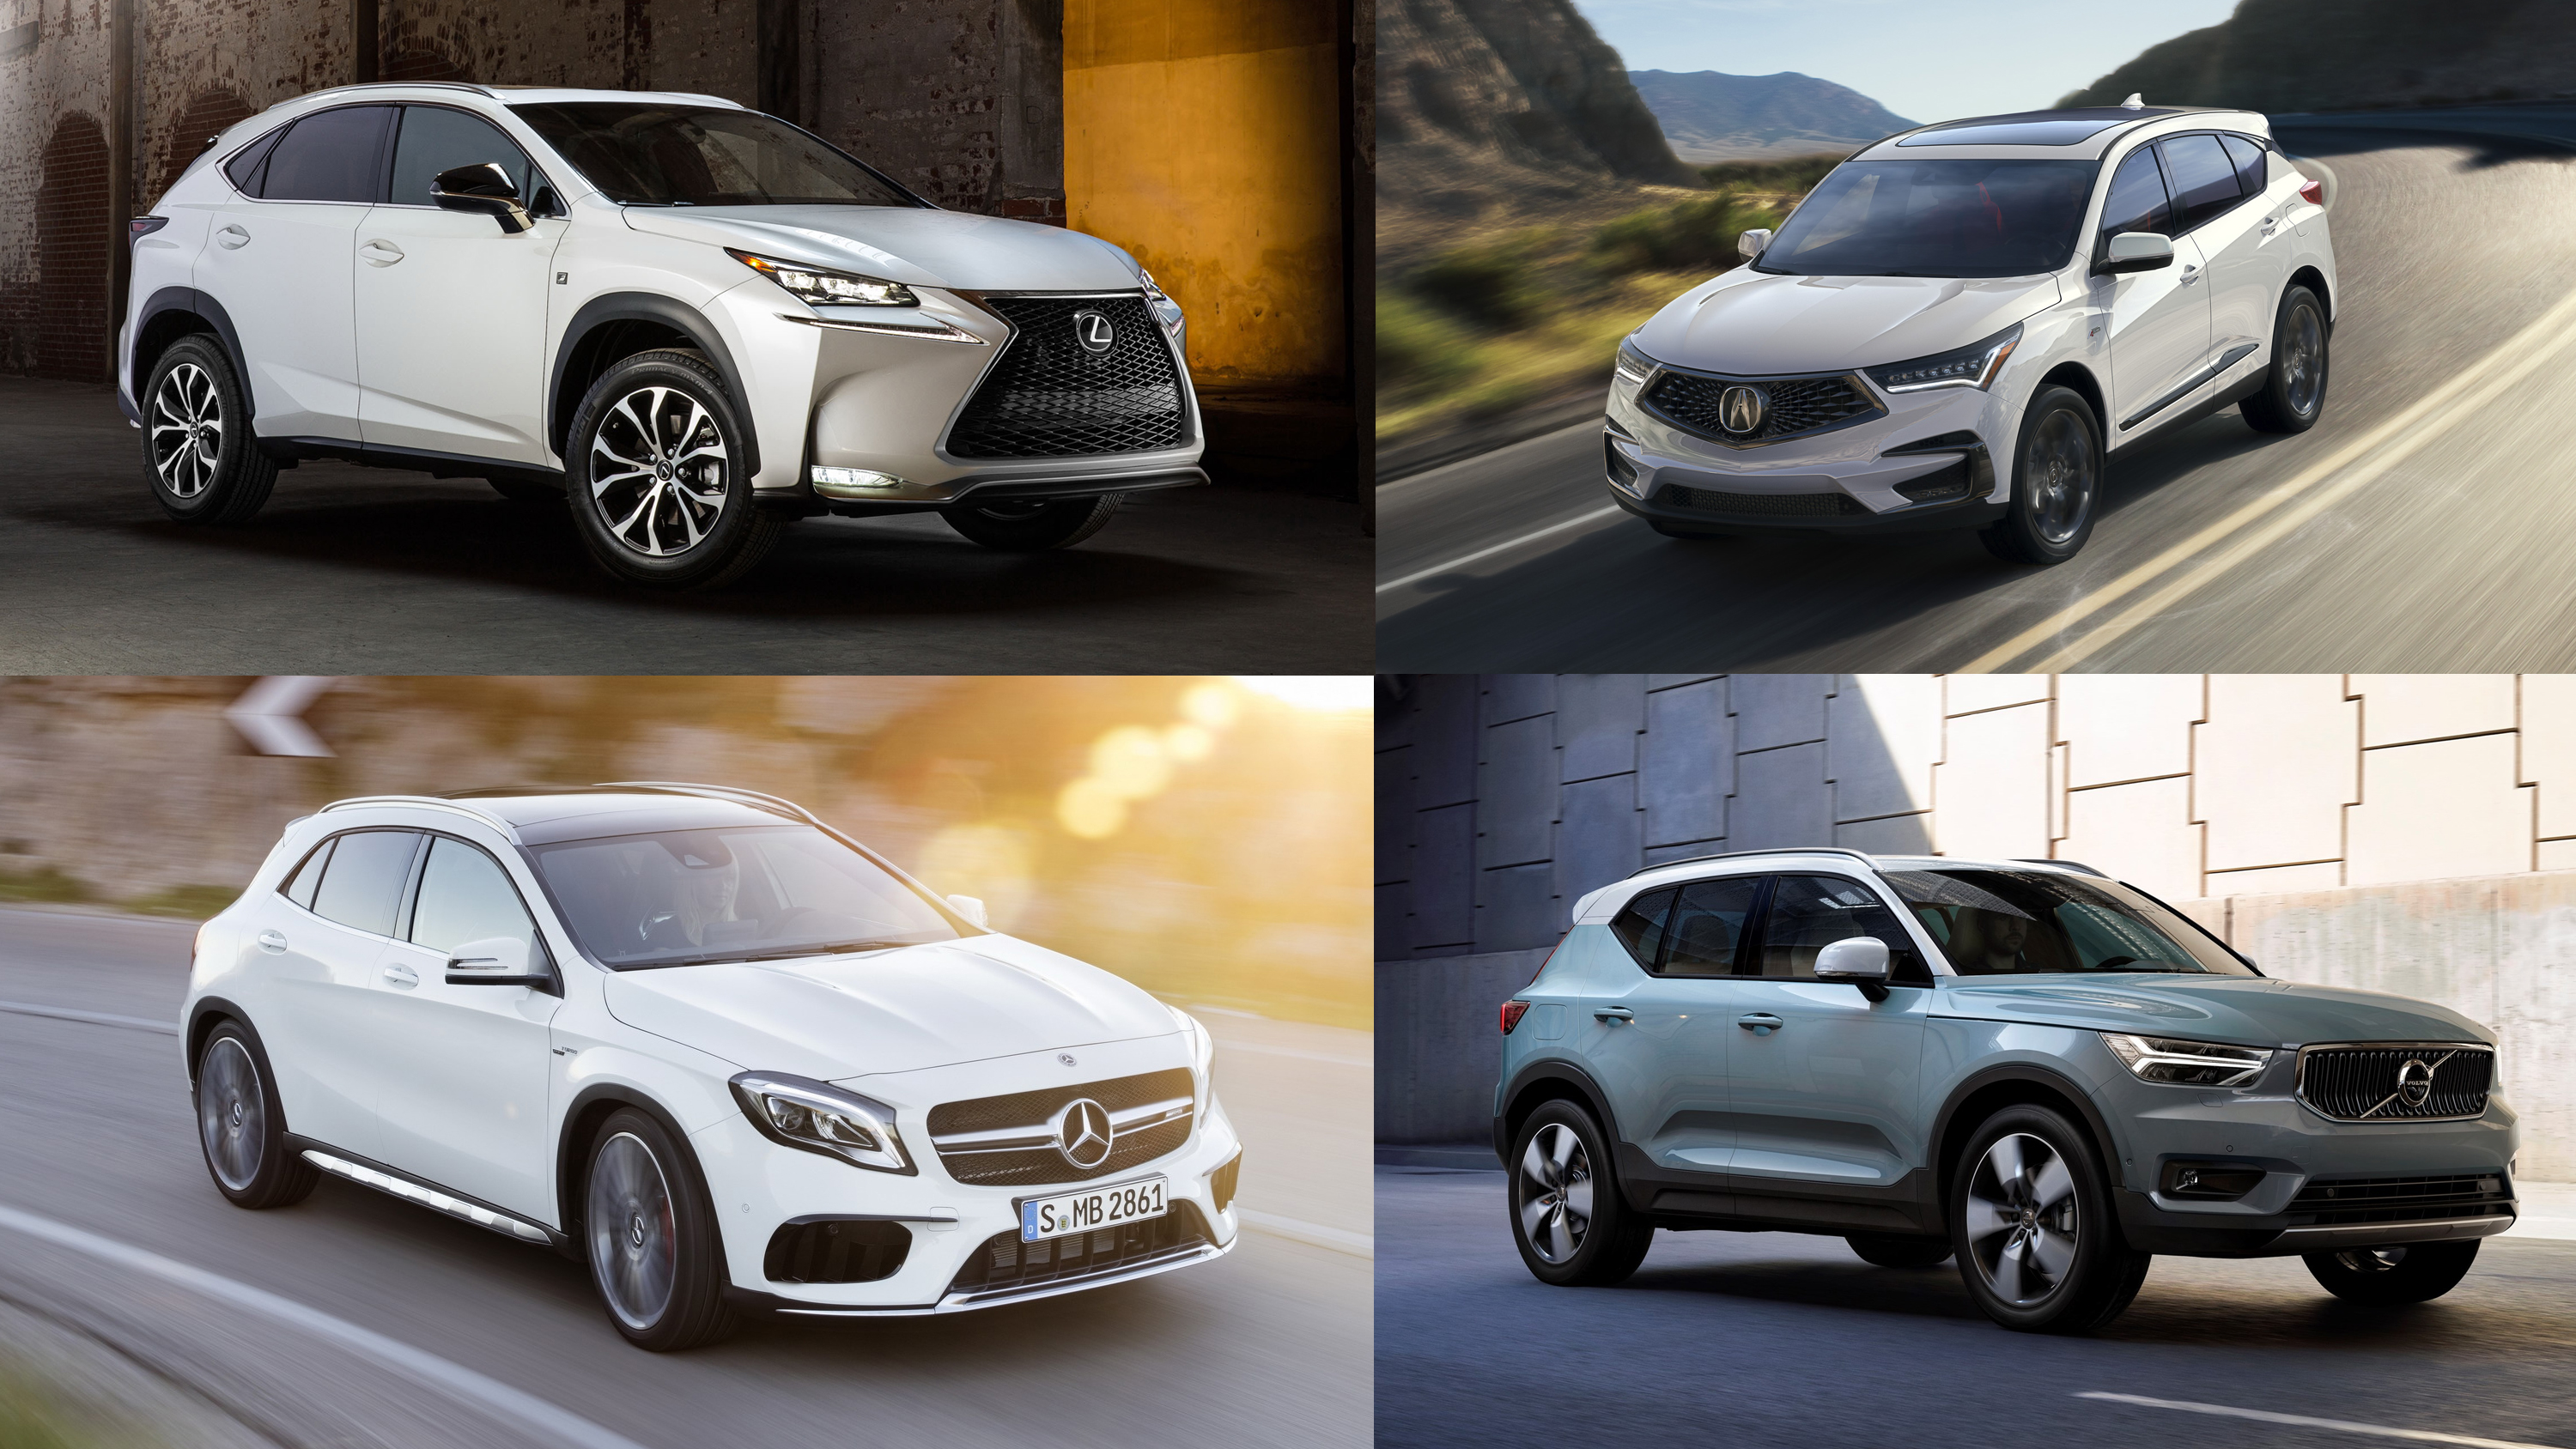 2019 Best Suv Crossover The Best 2019 Luxury SUVs Under $40,000 | Top Speed